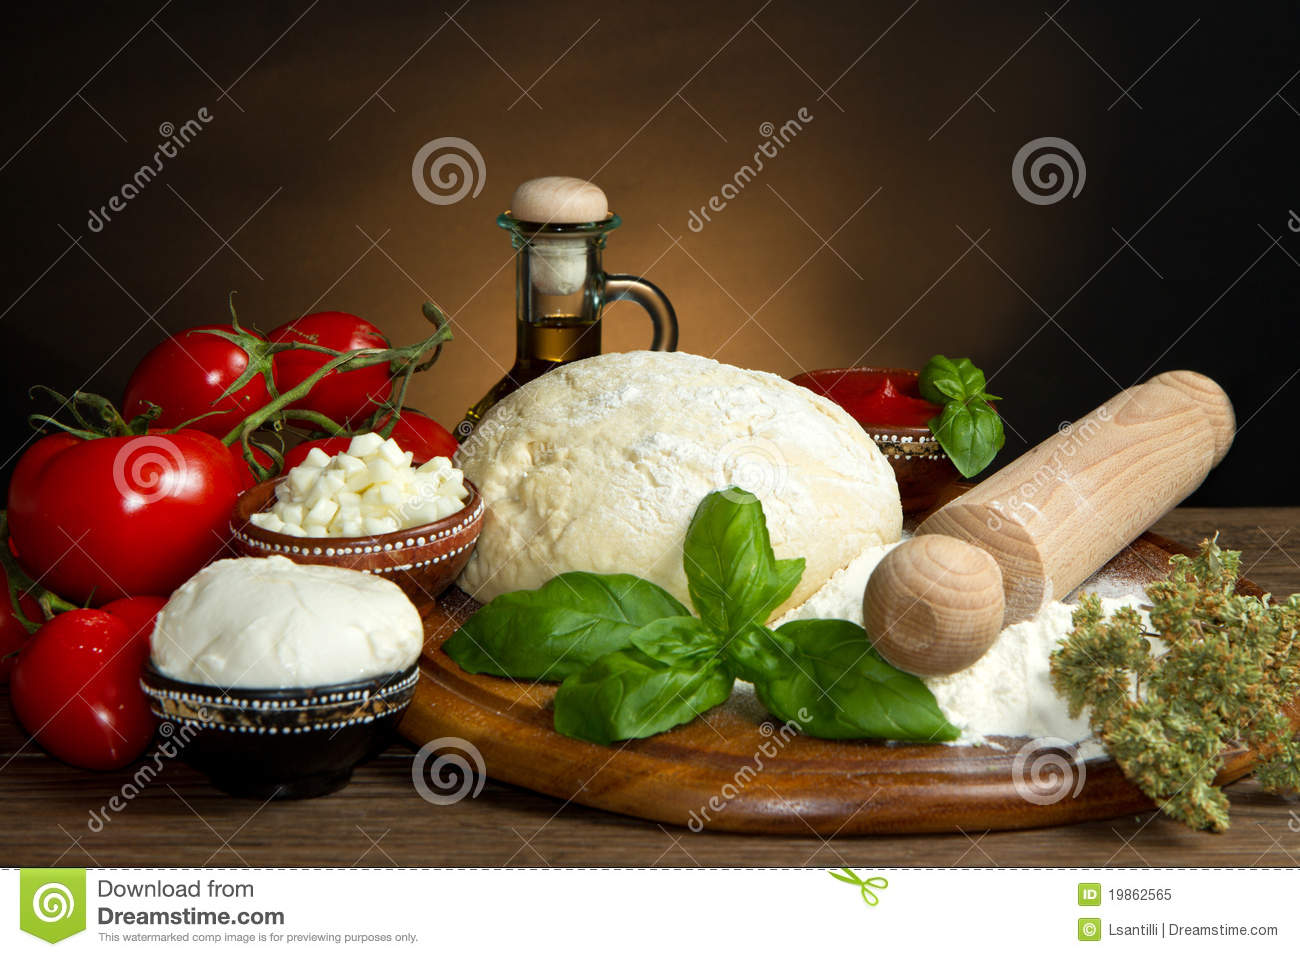 Pizza Ingredients Royalty Free Stock Photo - Image: 19862565